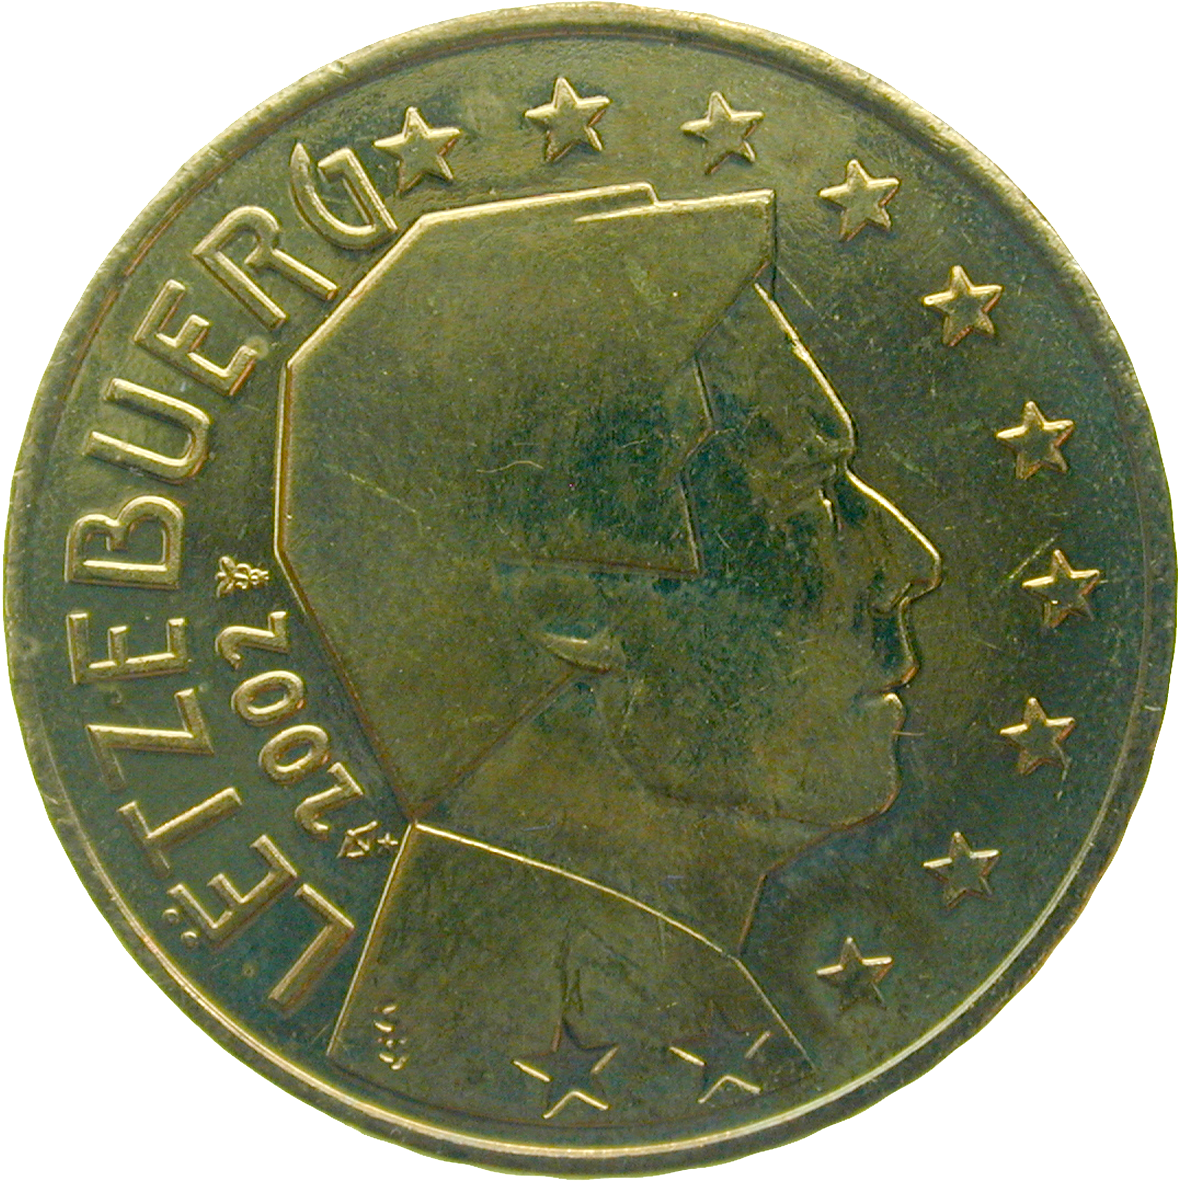 Grand Duchy of Luxembourg, Henri, 50 Euro Cent 2002 (reverse)